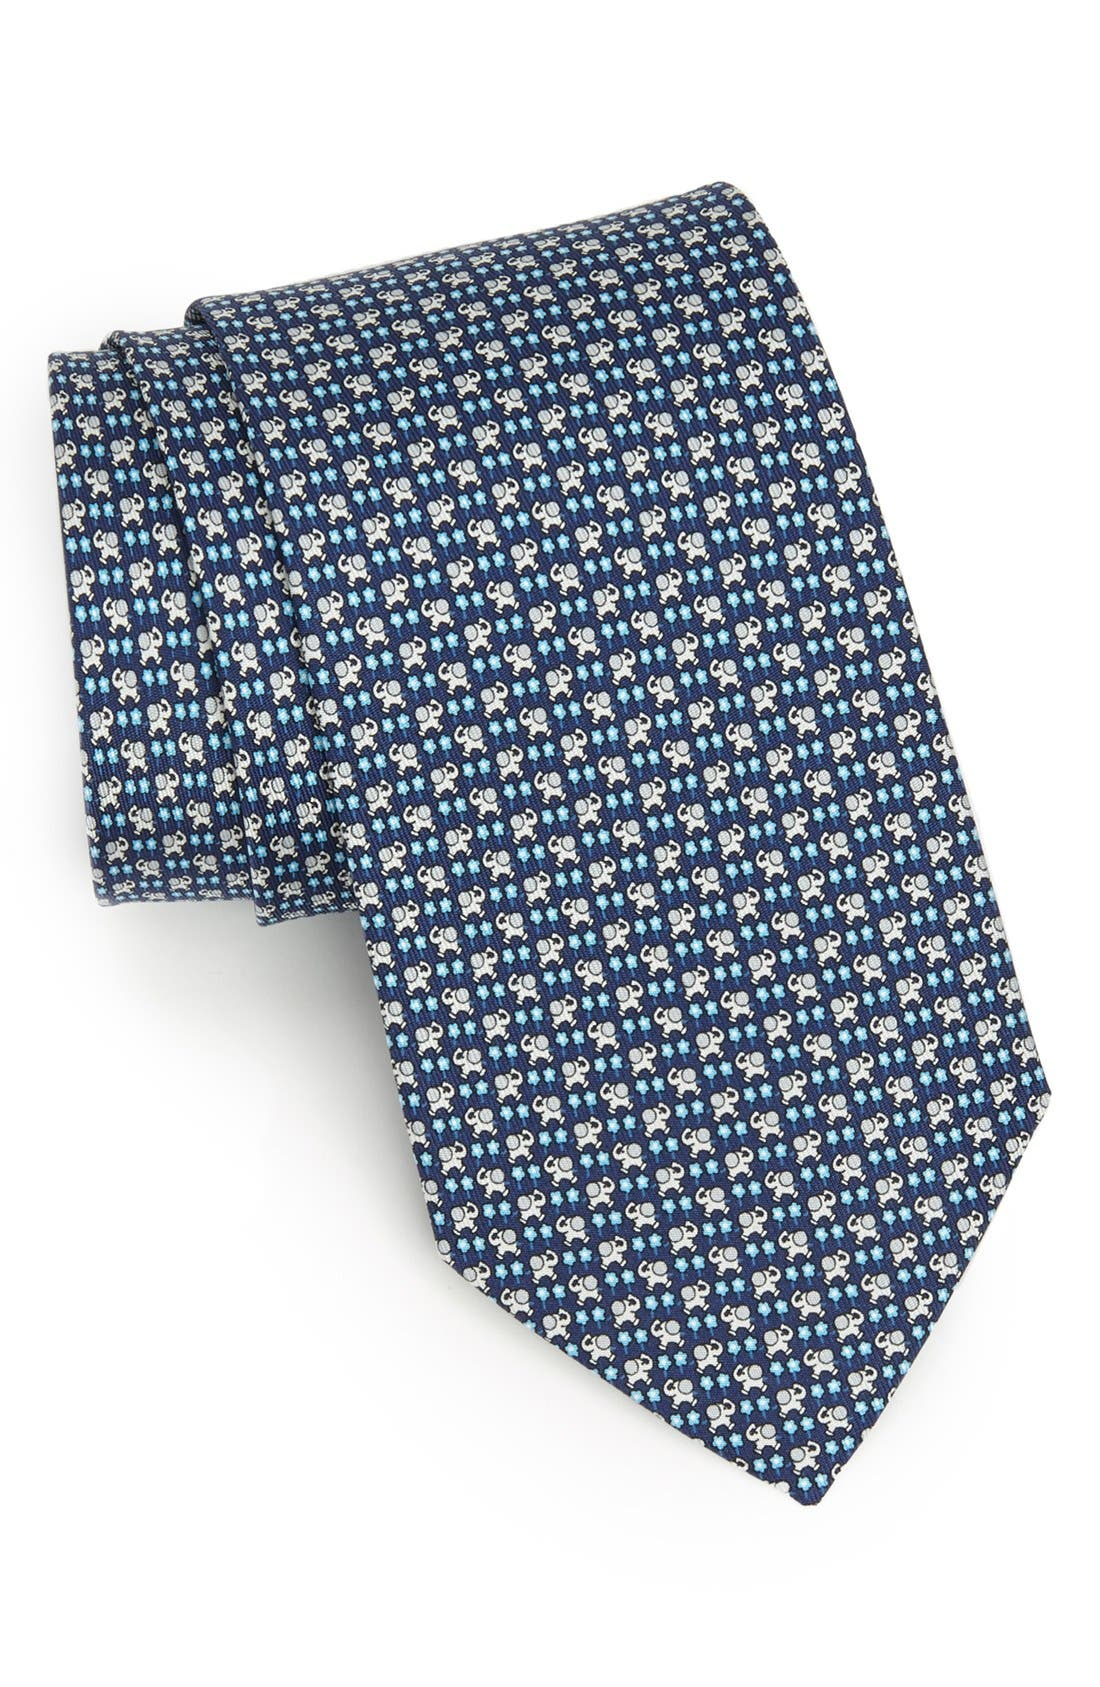 Alternate Image 1 Selected - Salvatore Ferragamo Elephant Print Silk Tie